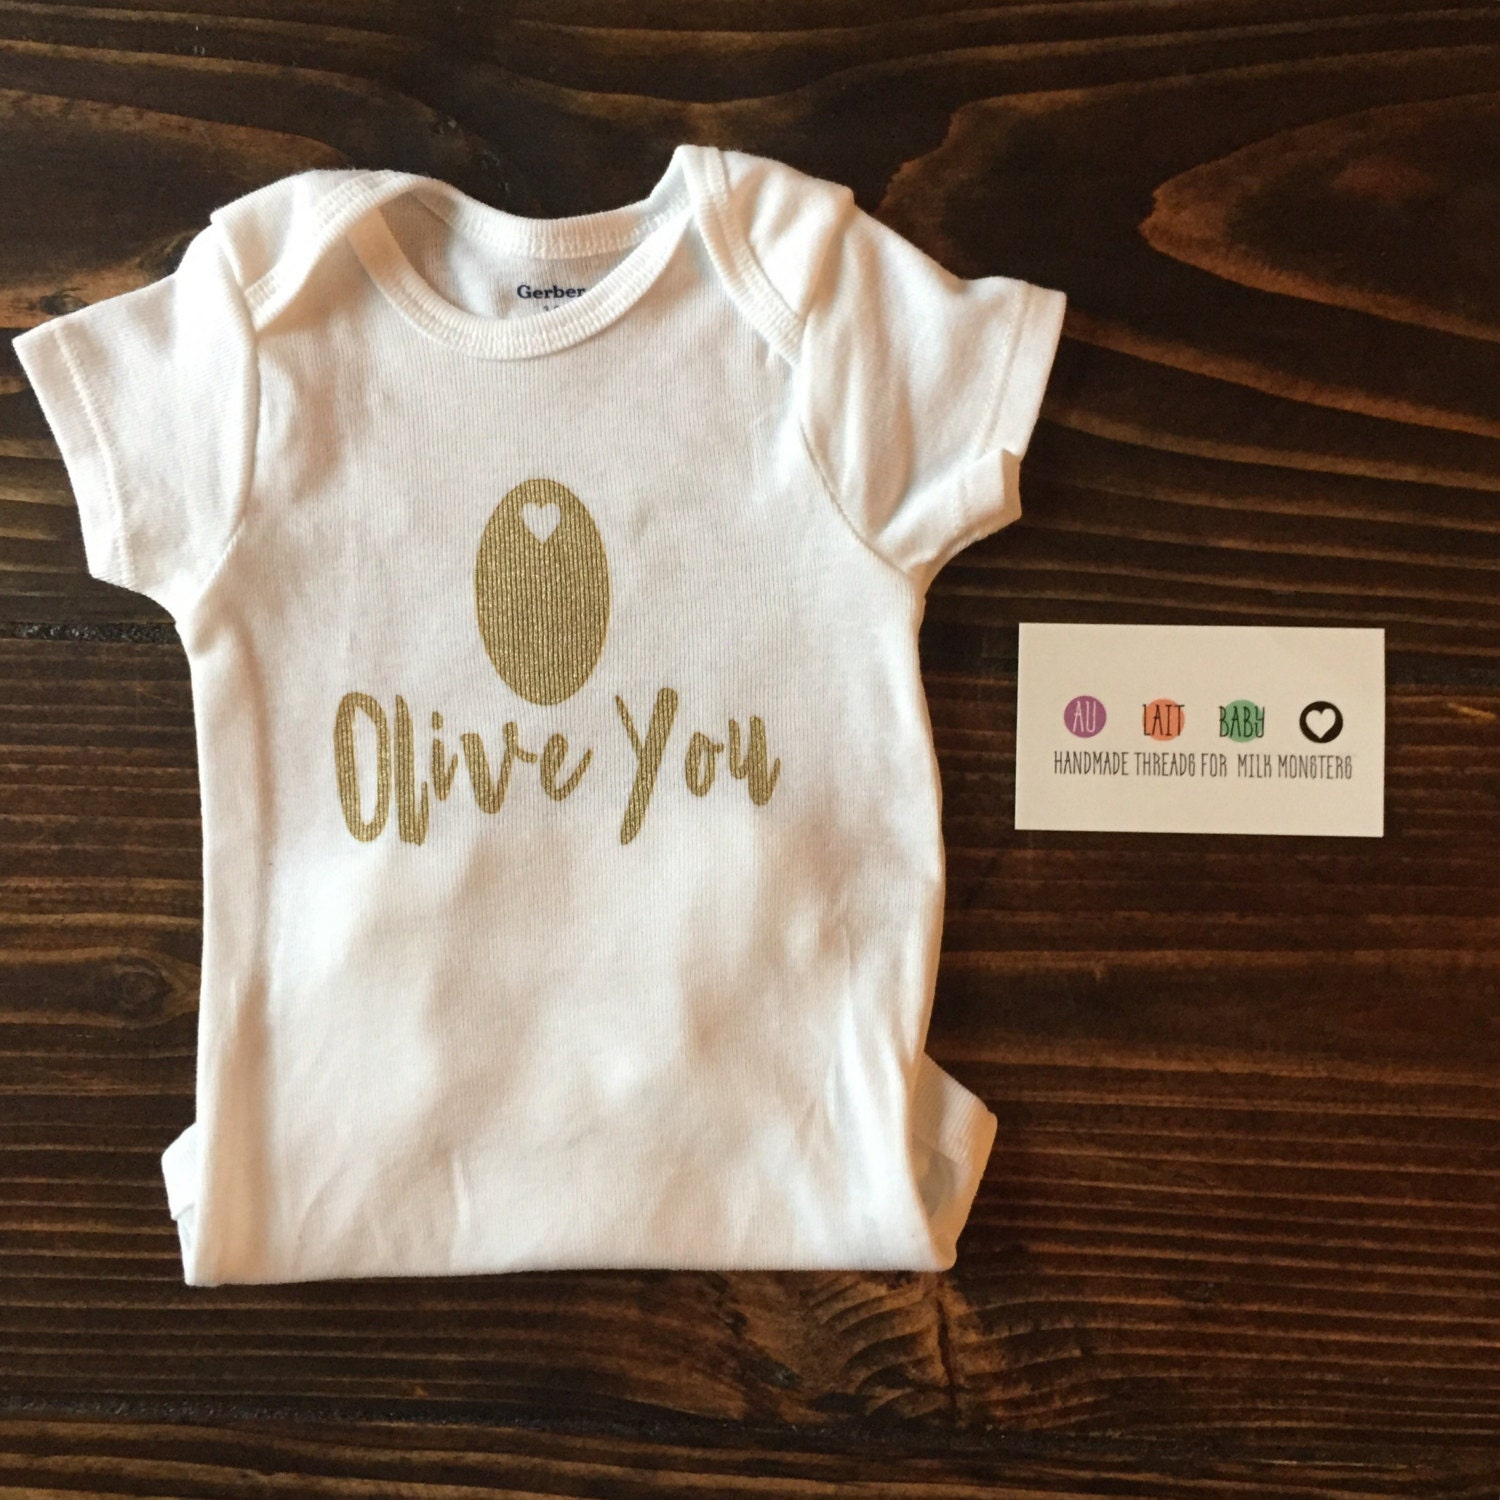 Shop Baby Olive Baby Clothes & Accessories from Cafepress. Find great designs on Baby Bodysuits, Bibs, Burp Clothes, Baby T-shirts and more!?Free Returns .